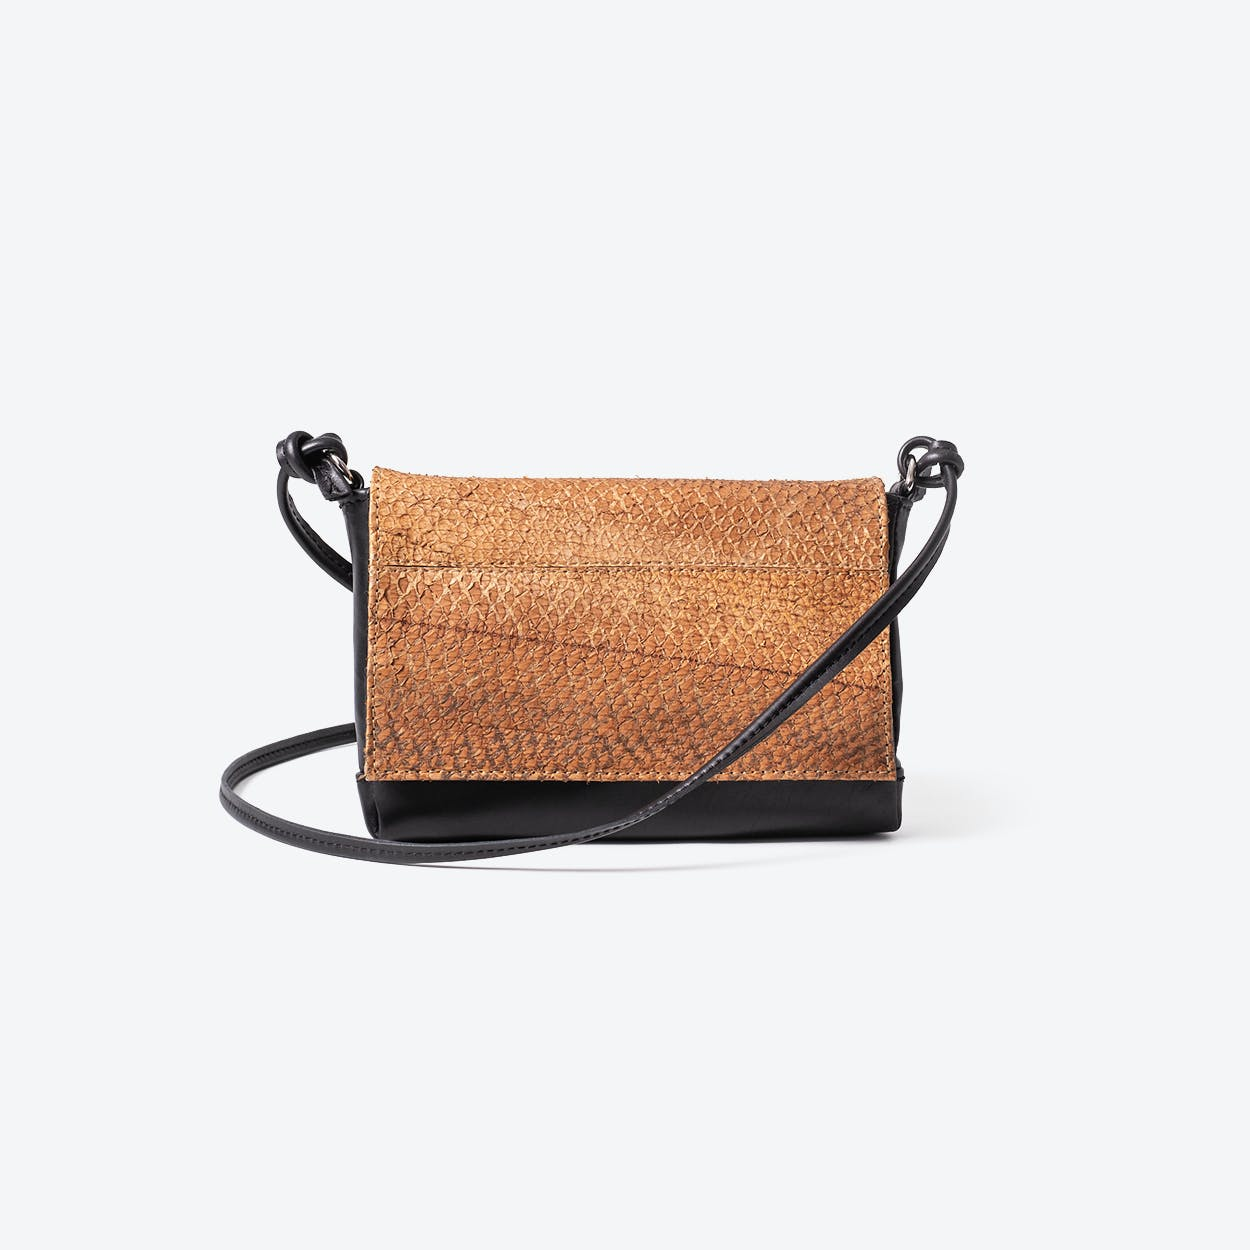 LOLA Caramel Fish Leather Clutches